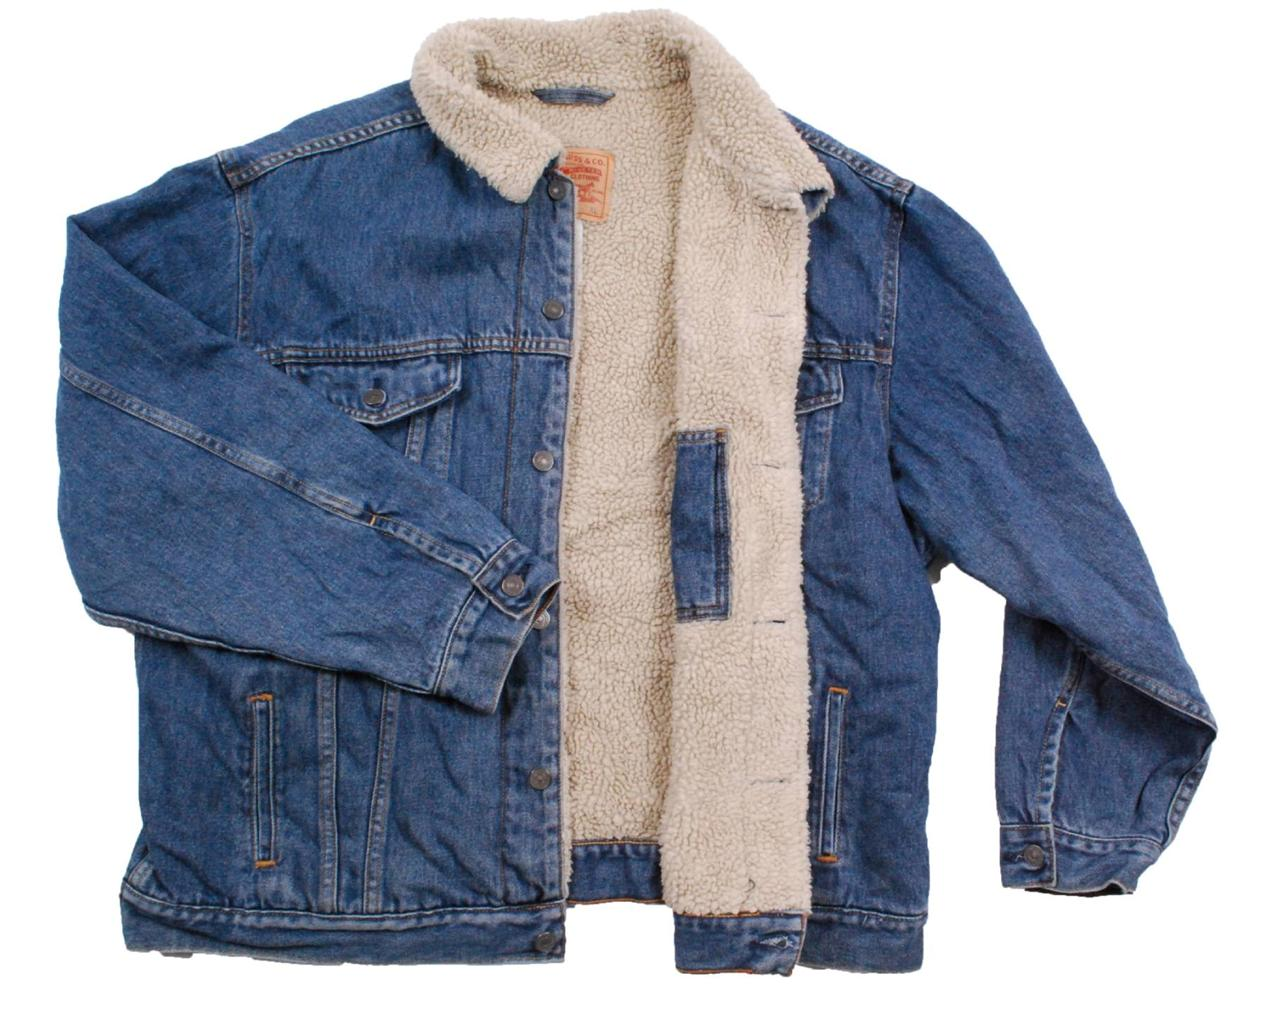 Comments about Wrangler Rugged Wear® Flannel Lined Denim Jacket Antique Navy: Love this jacket. I wear a medium shirt but I needed something to wear over a flannel shirt so the large size fits perfect.5/5(39).